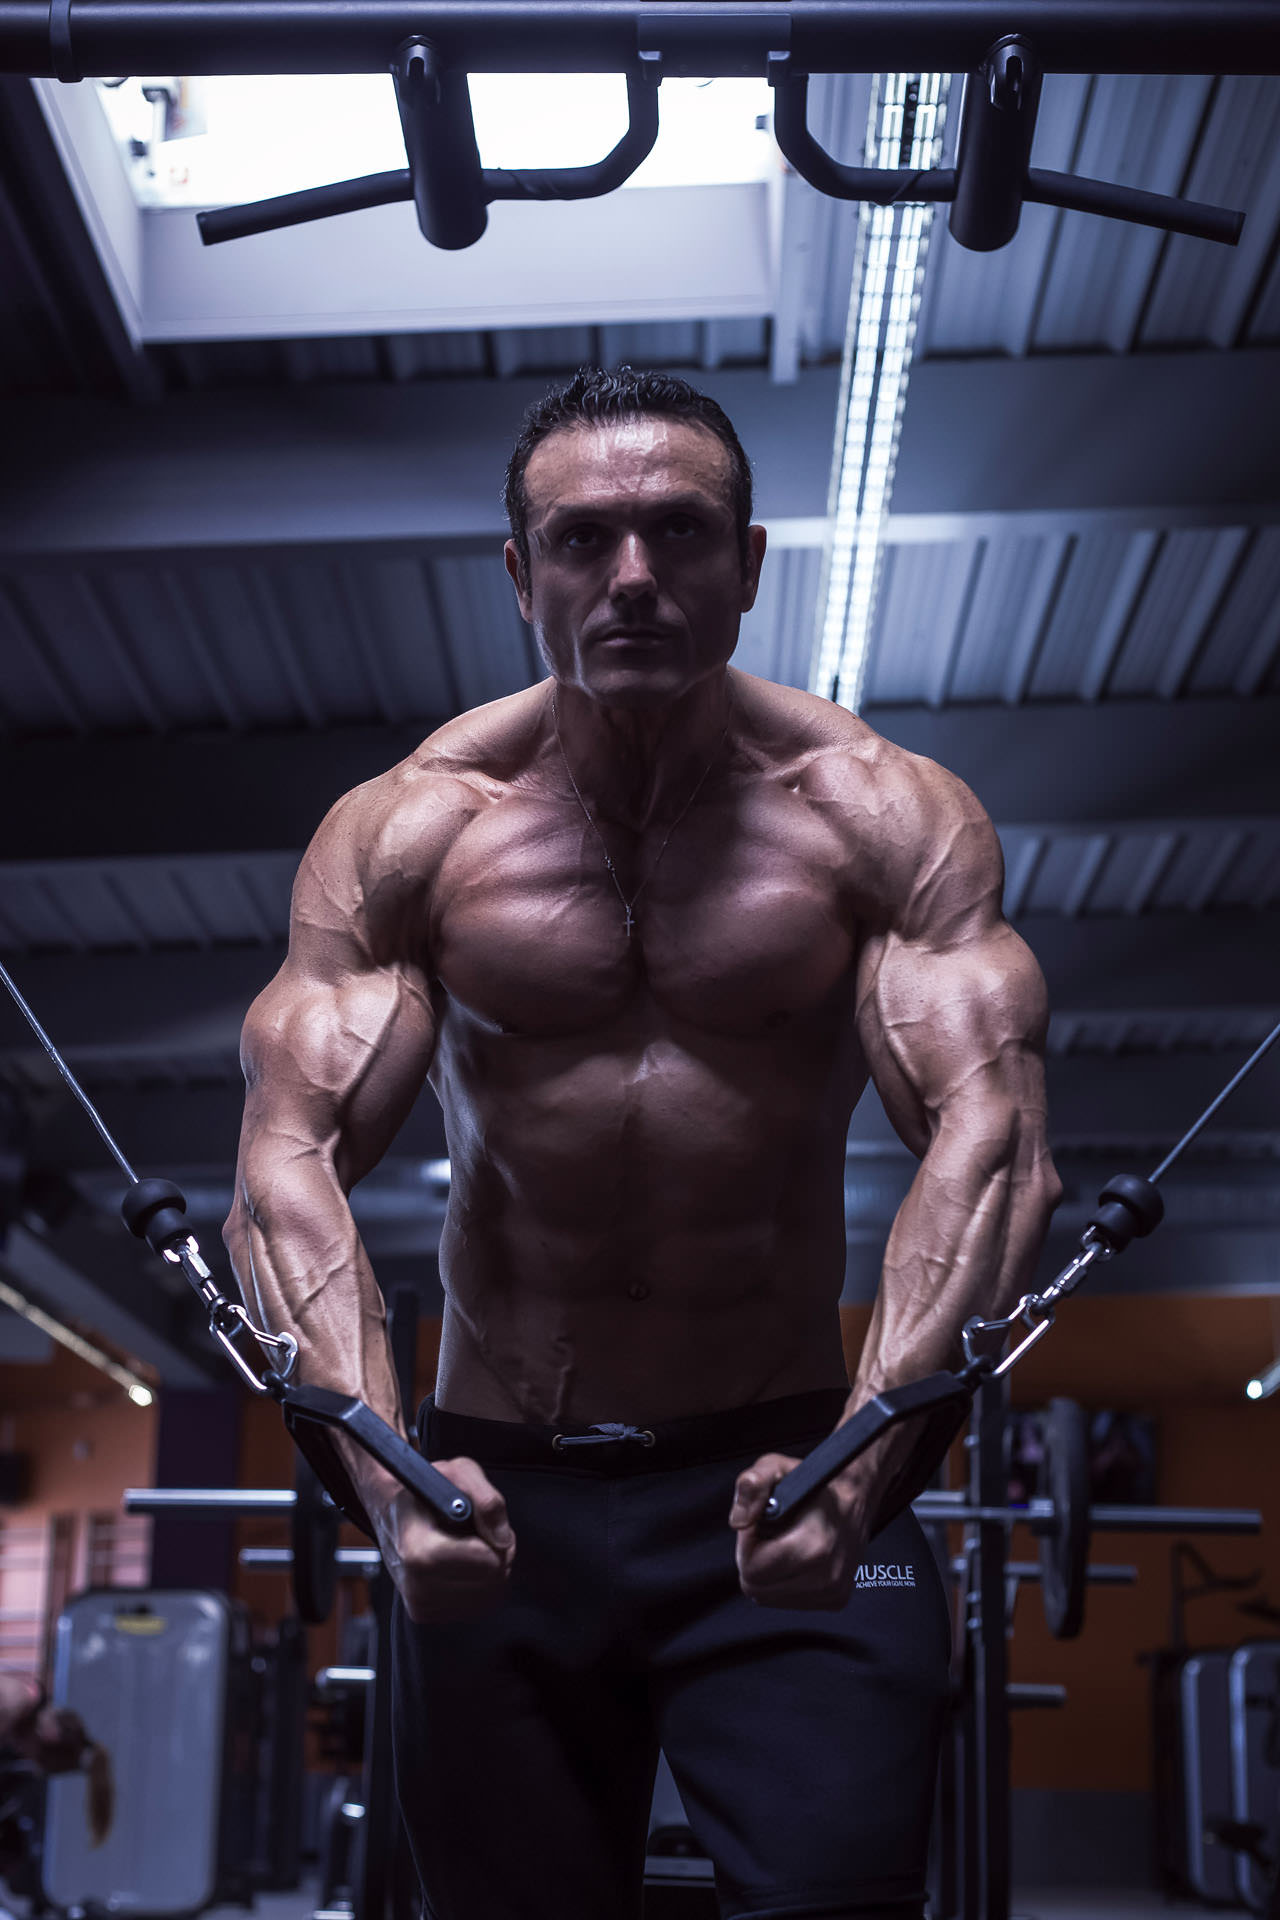 2017-02-24 - Enzo Foukra - MyMuscle - FitnessPark - 4365 - 1920px